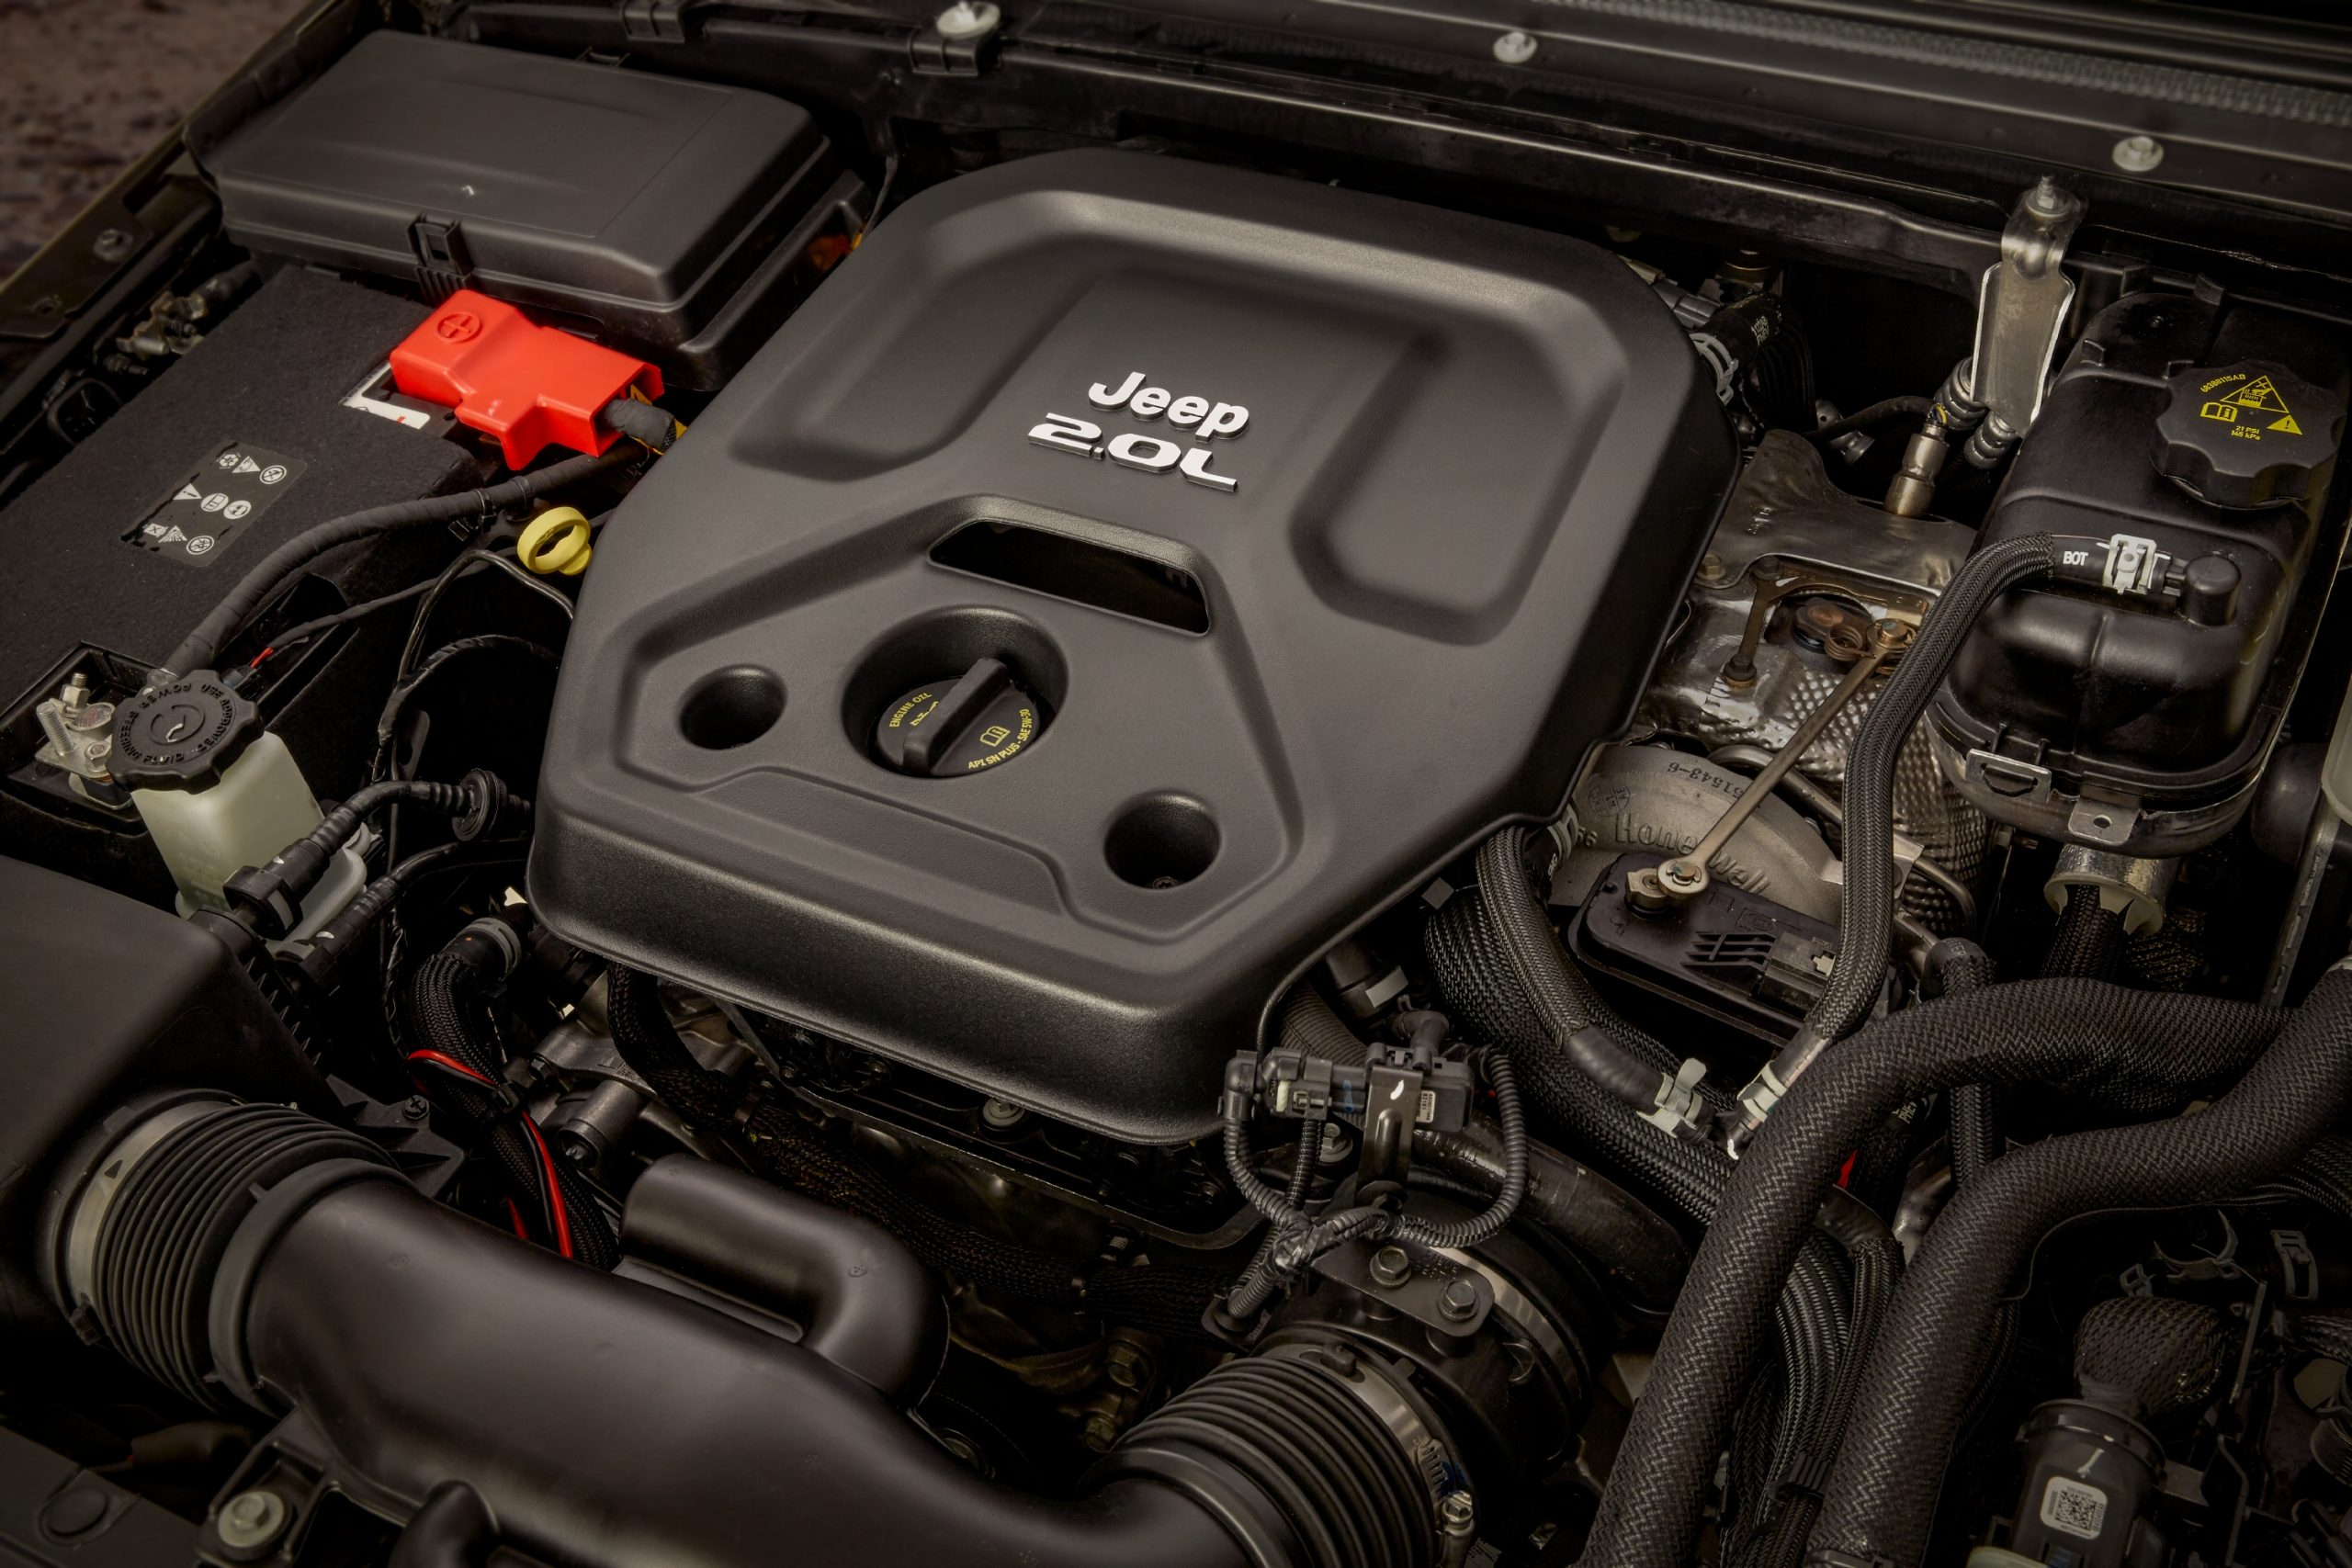 The 2021 Jeep® Wrangler 4xe powertrain includes a 2.0-liter turbocharged I-4 rated at 270 hp and 295 lb-ft of torque.